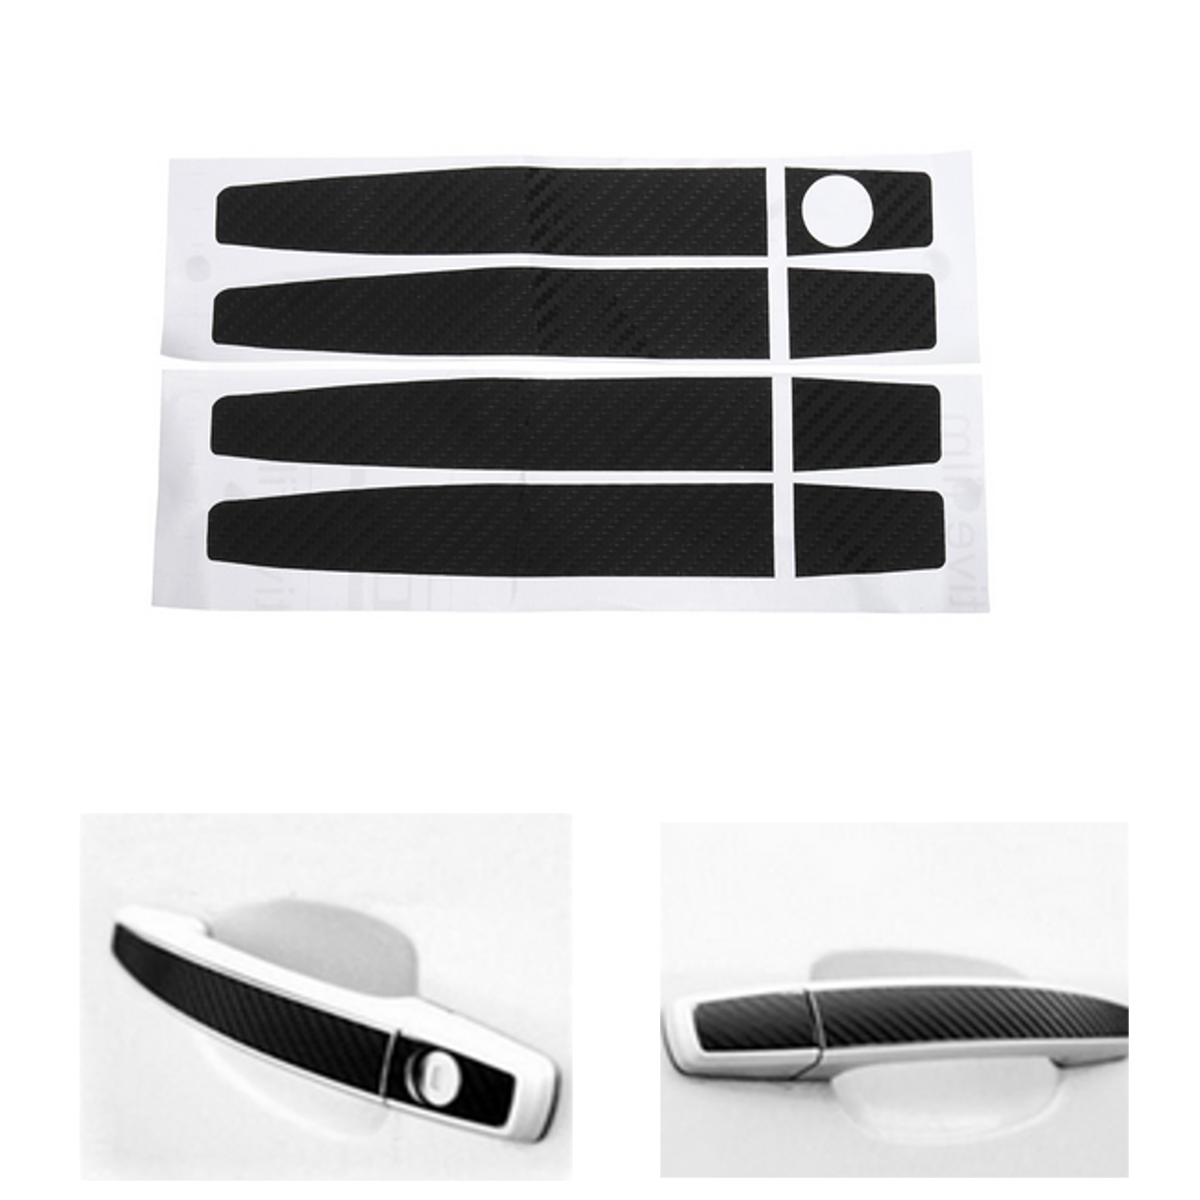 New Carbon Fiber Car Door Handle Cover Sticker Universa